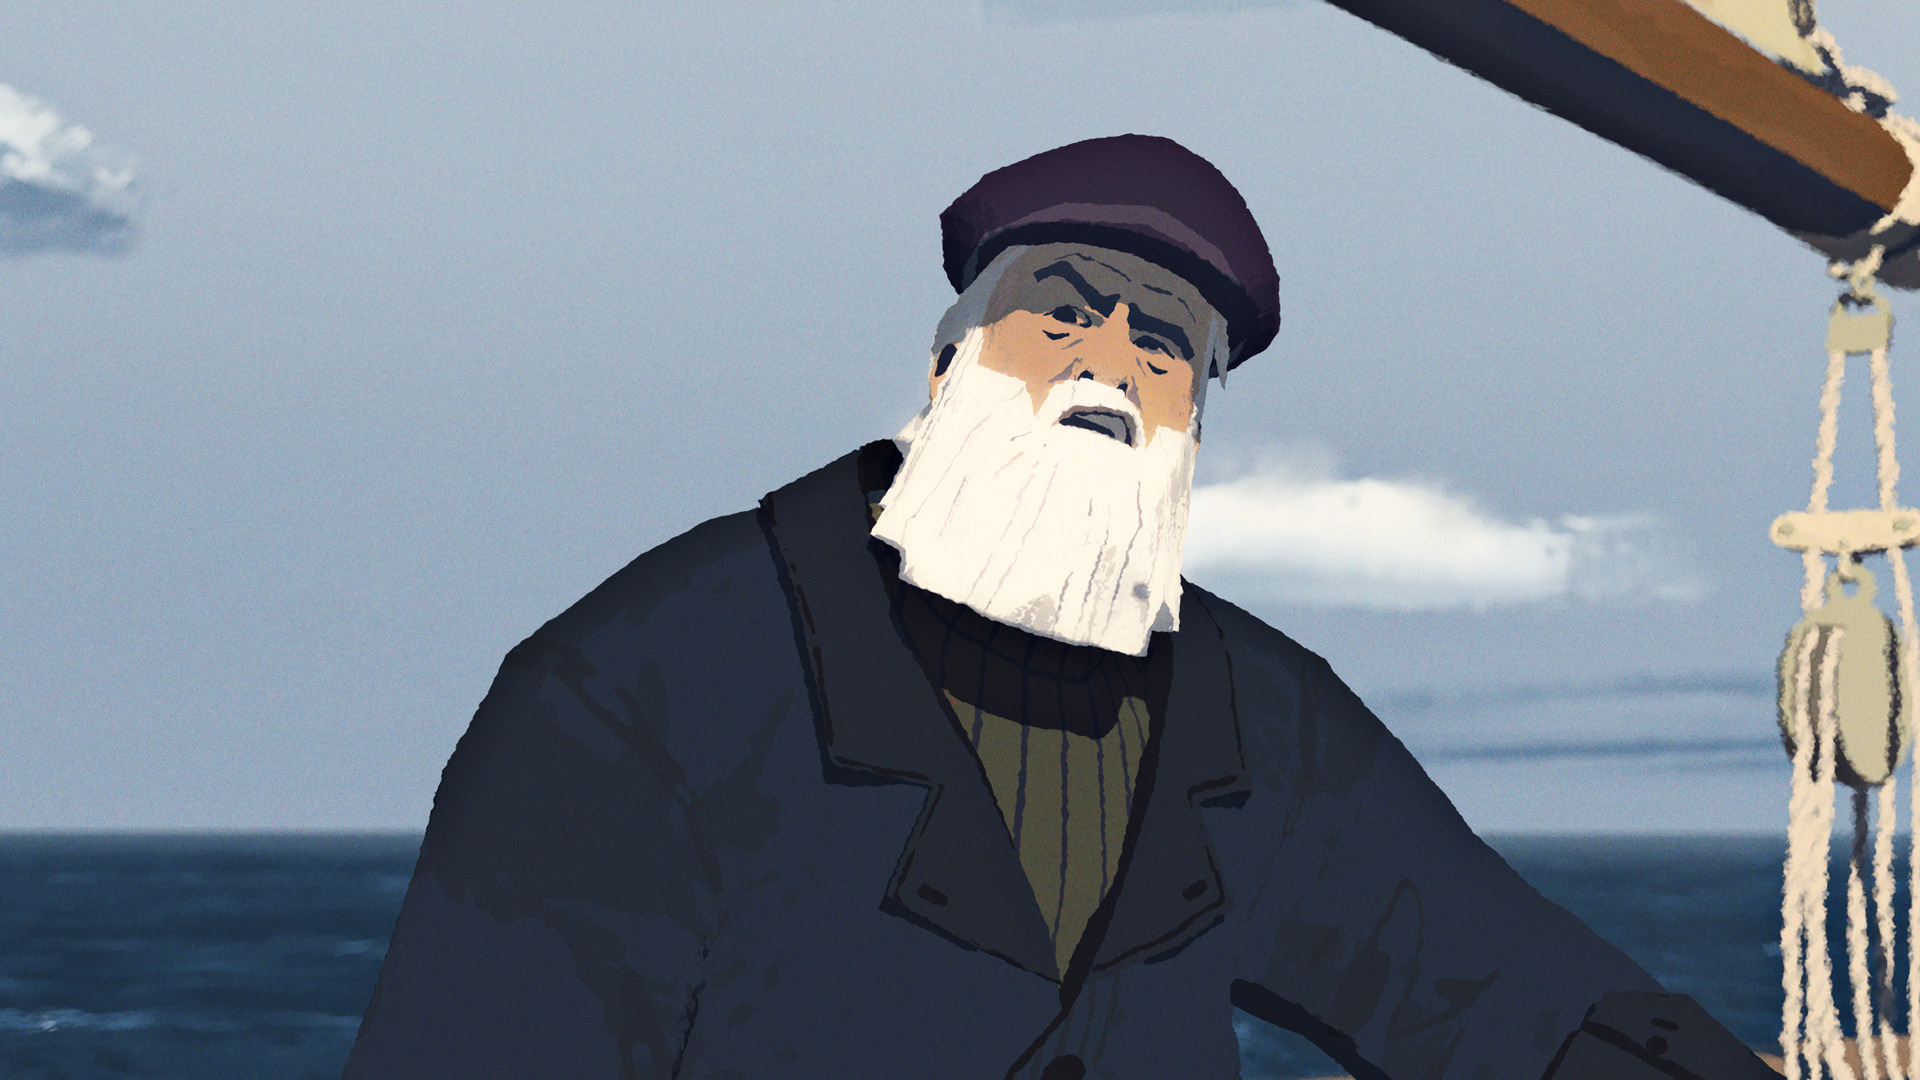 Google's Latest Spotlight Story 'Age of Sail' Delivers a Powerful